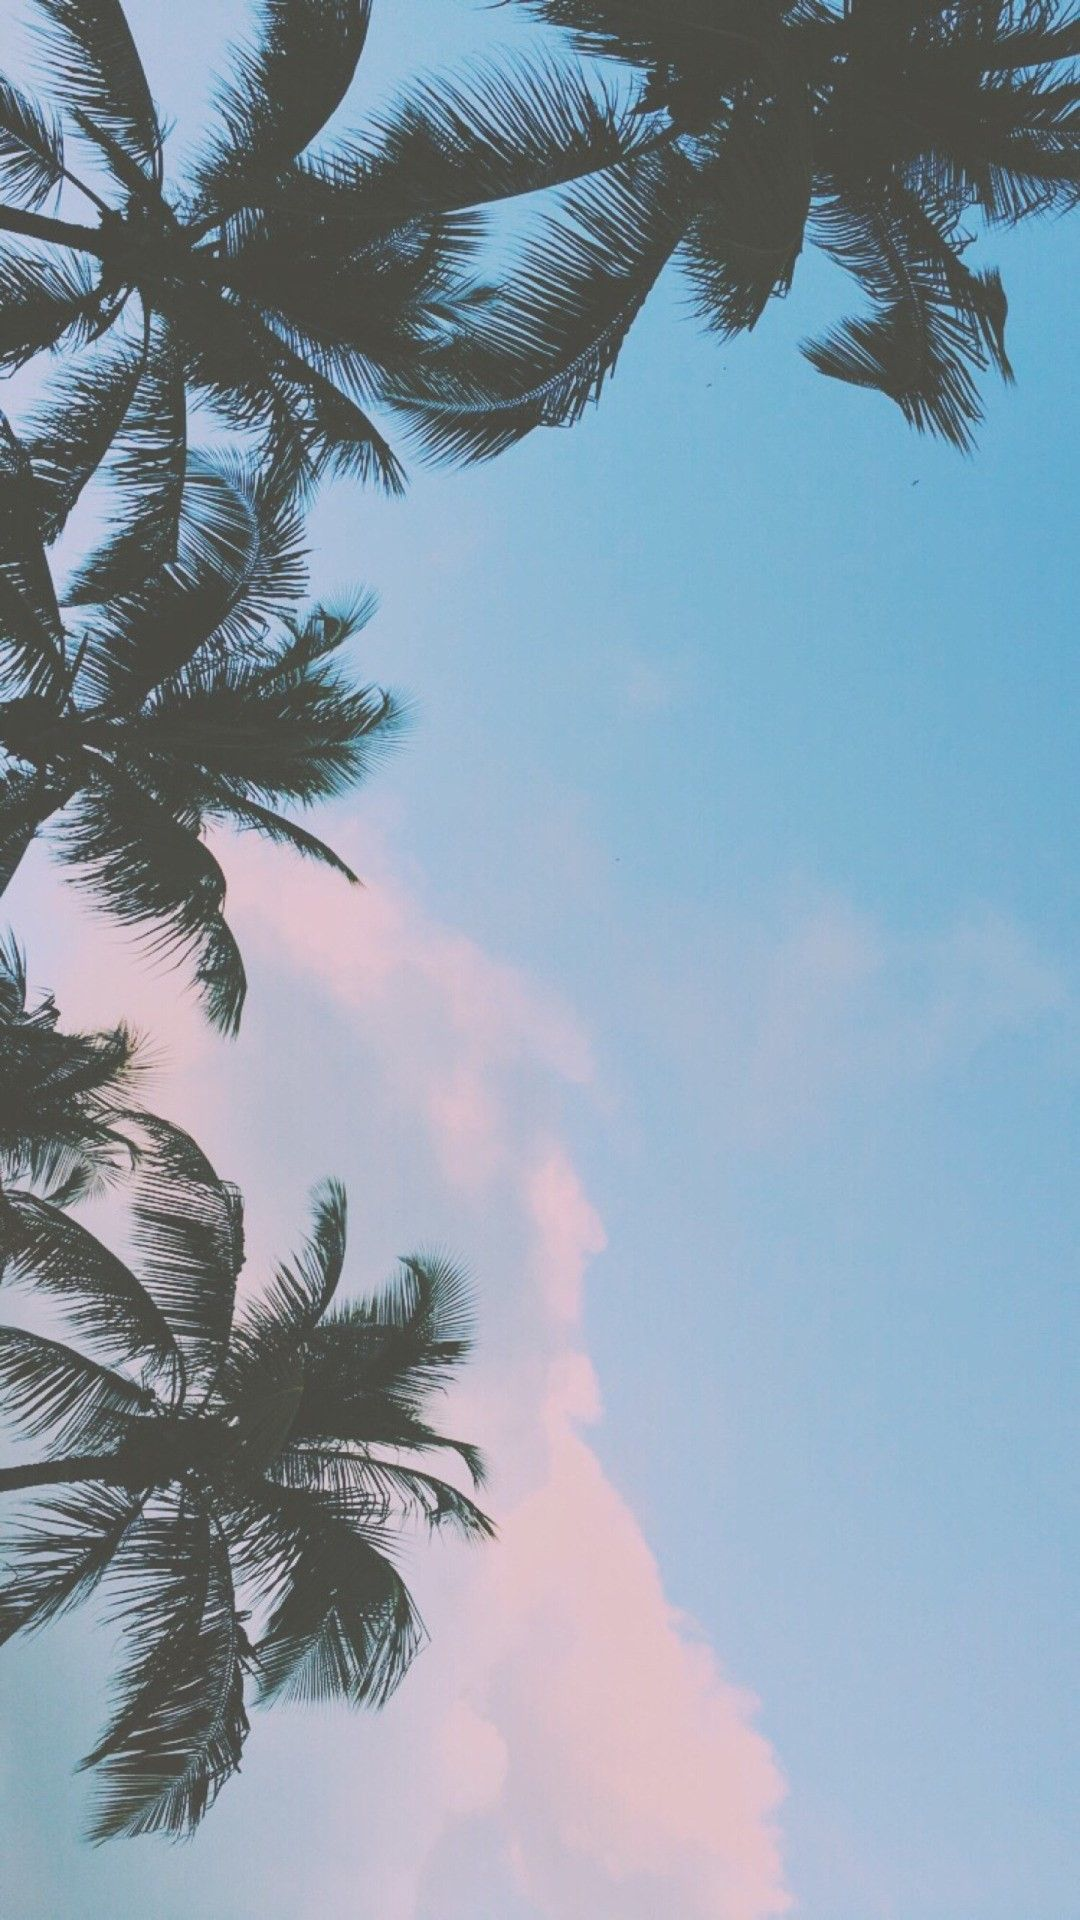 Simple Iphone Home Screen Wallpaper Tumblr In 2020 Tumblr Backgrounds Colorful Wallpaper Landscape Wallpaper